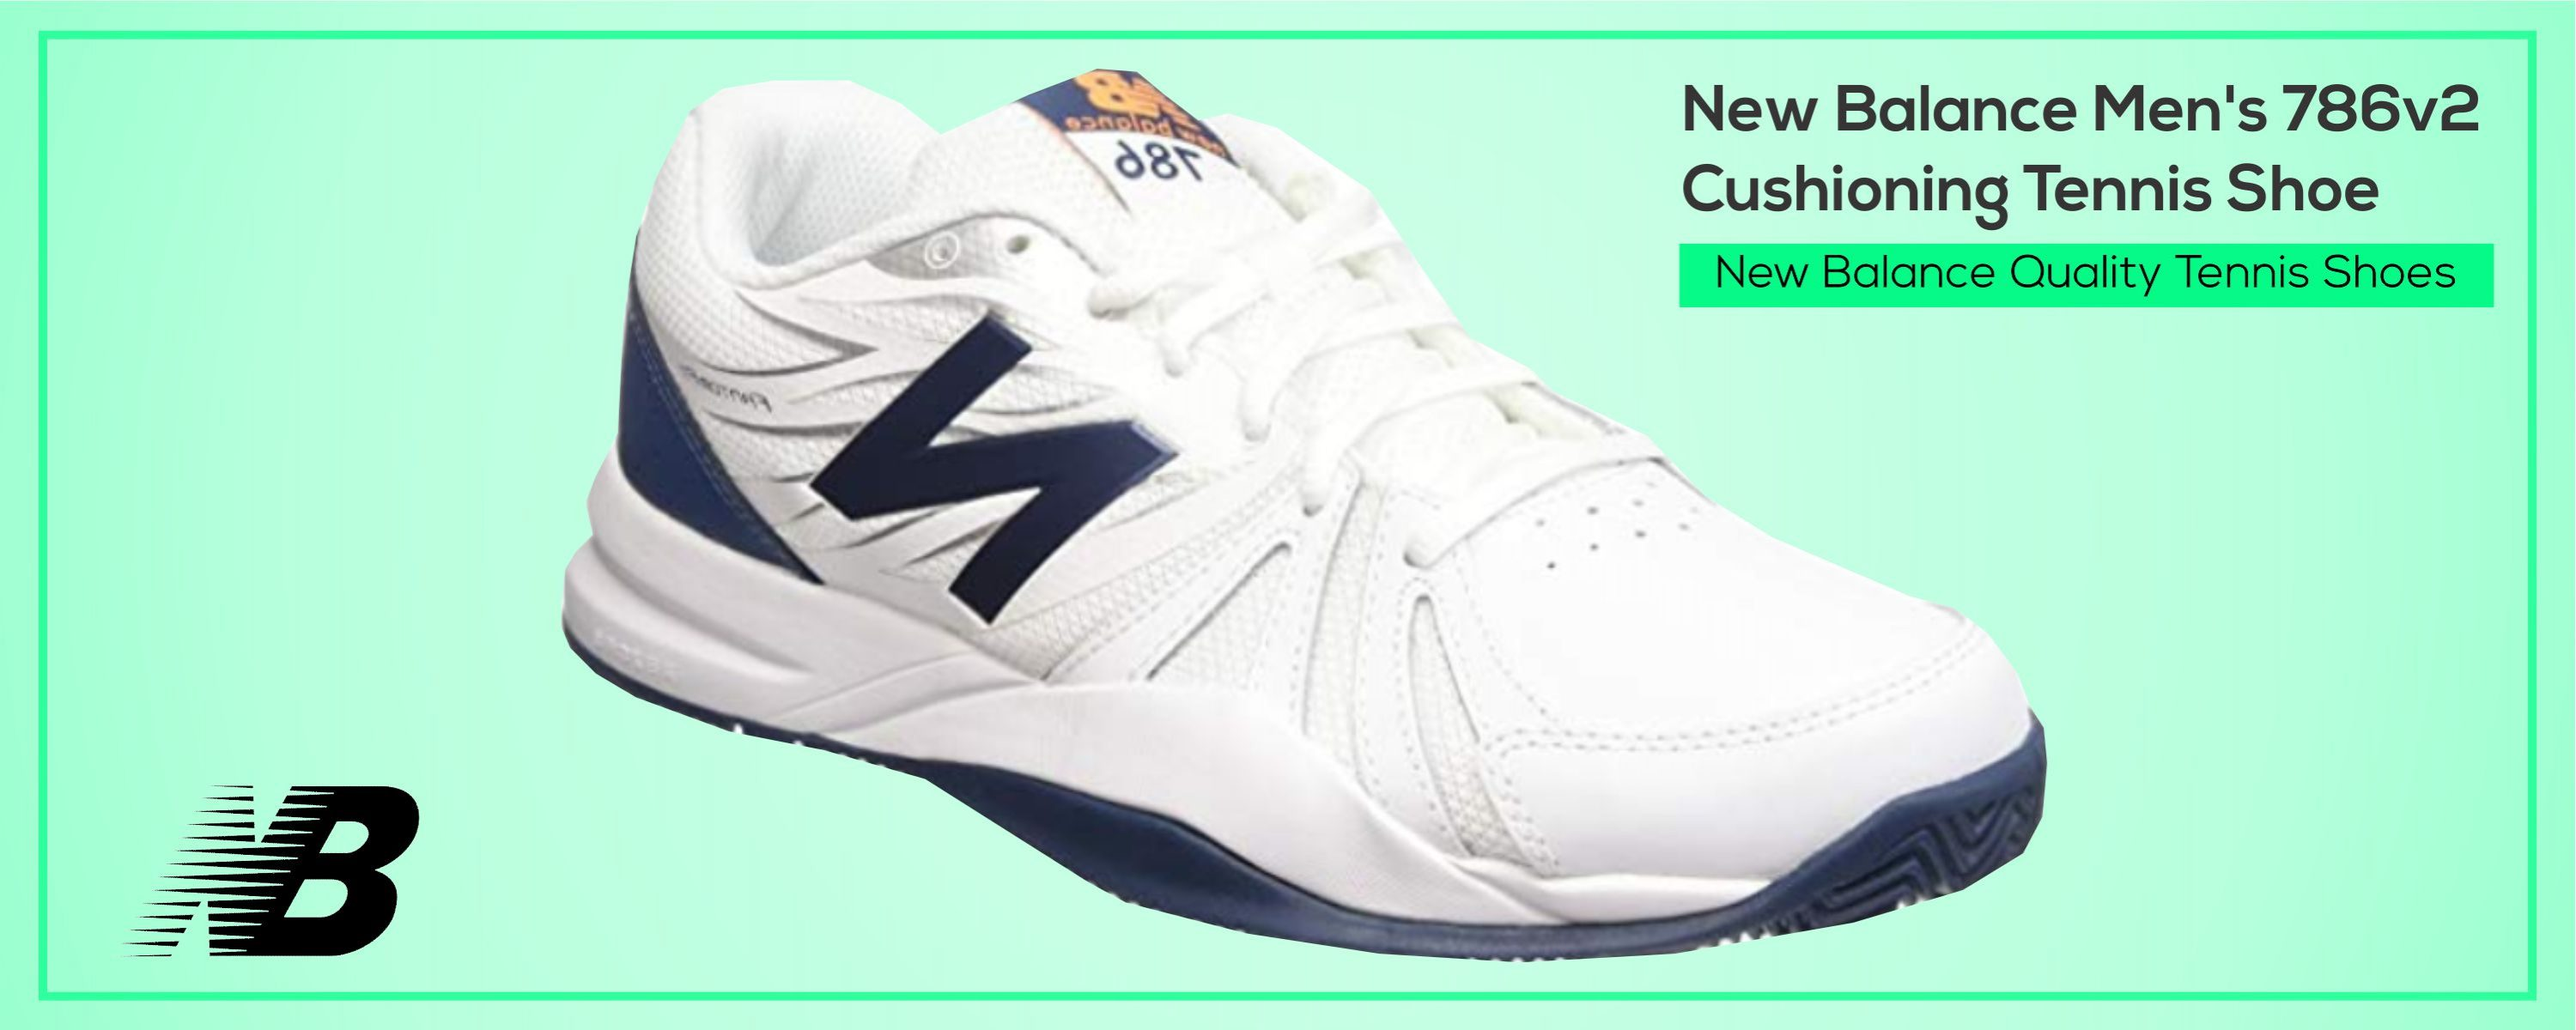 New Balance Quality Tennis Shoes